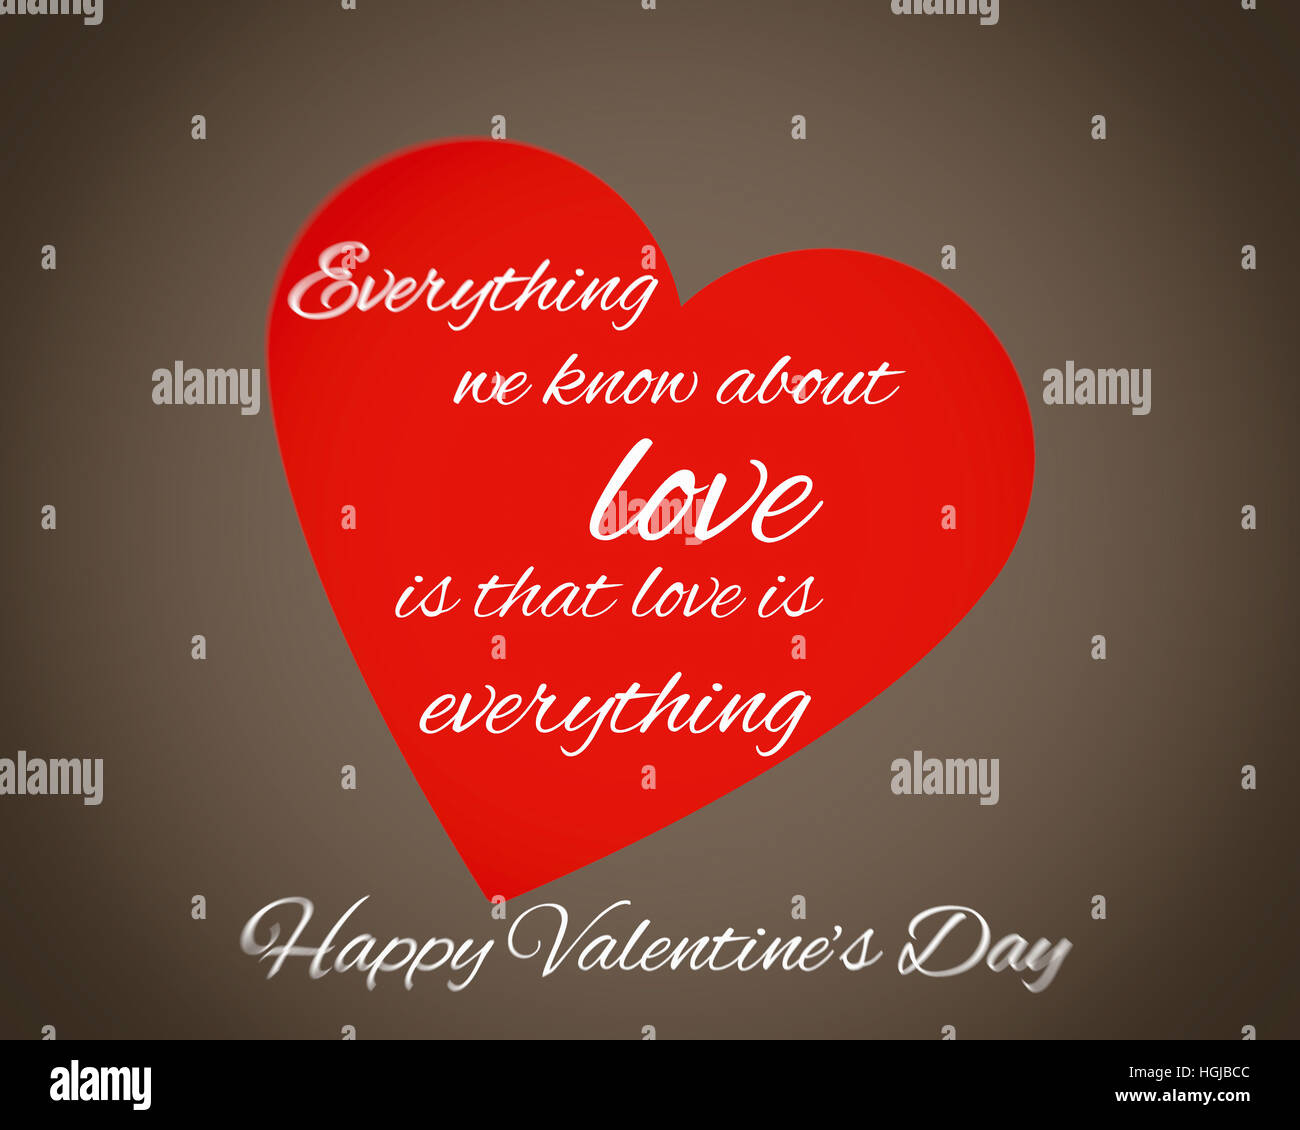 'Everything we know about love is that love is everything!' Happy  Valentine's day '